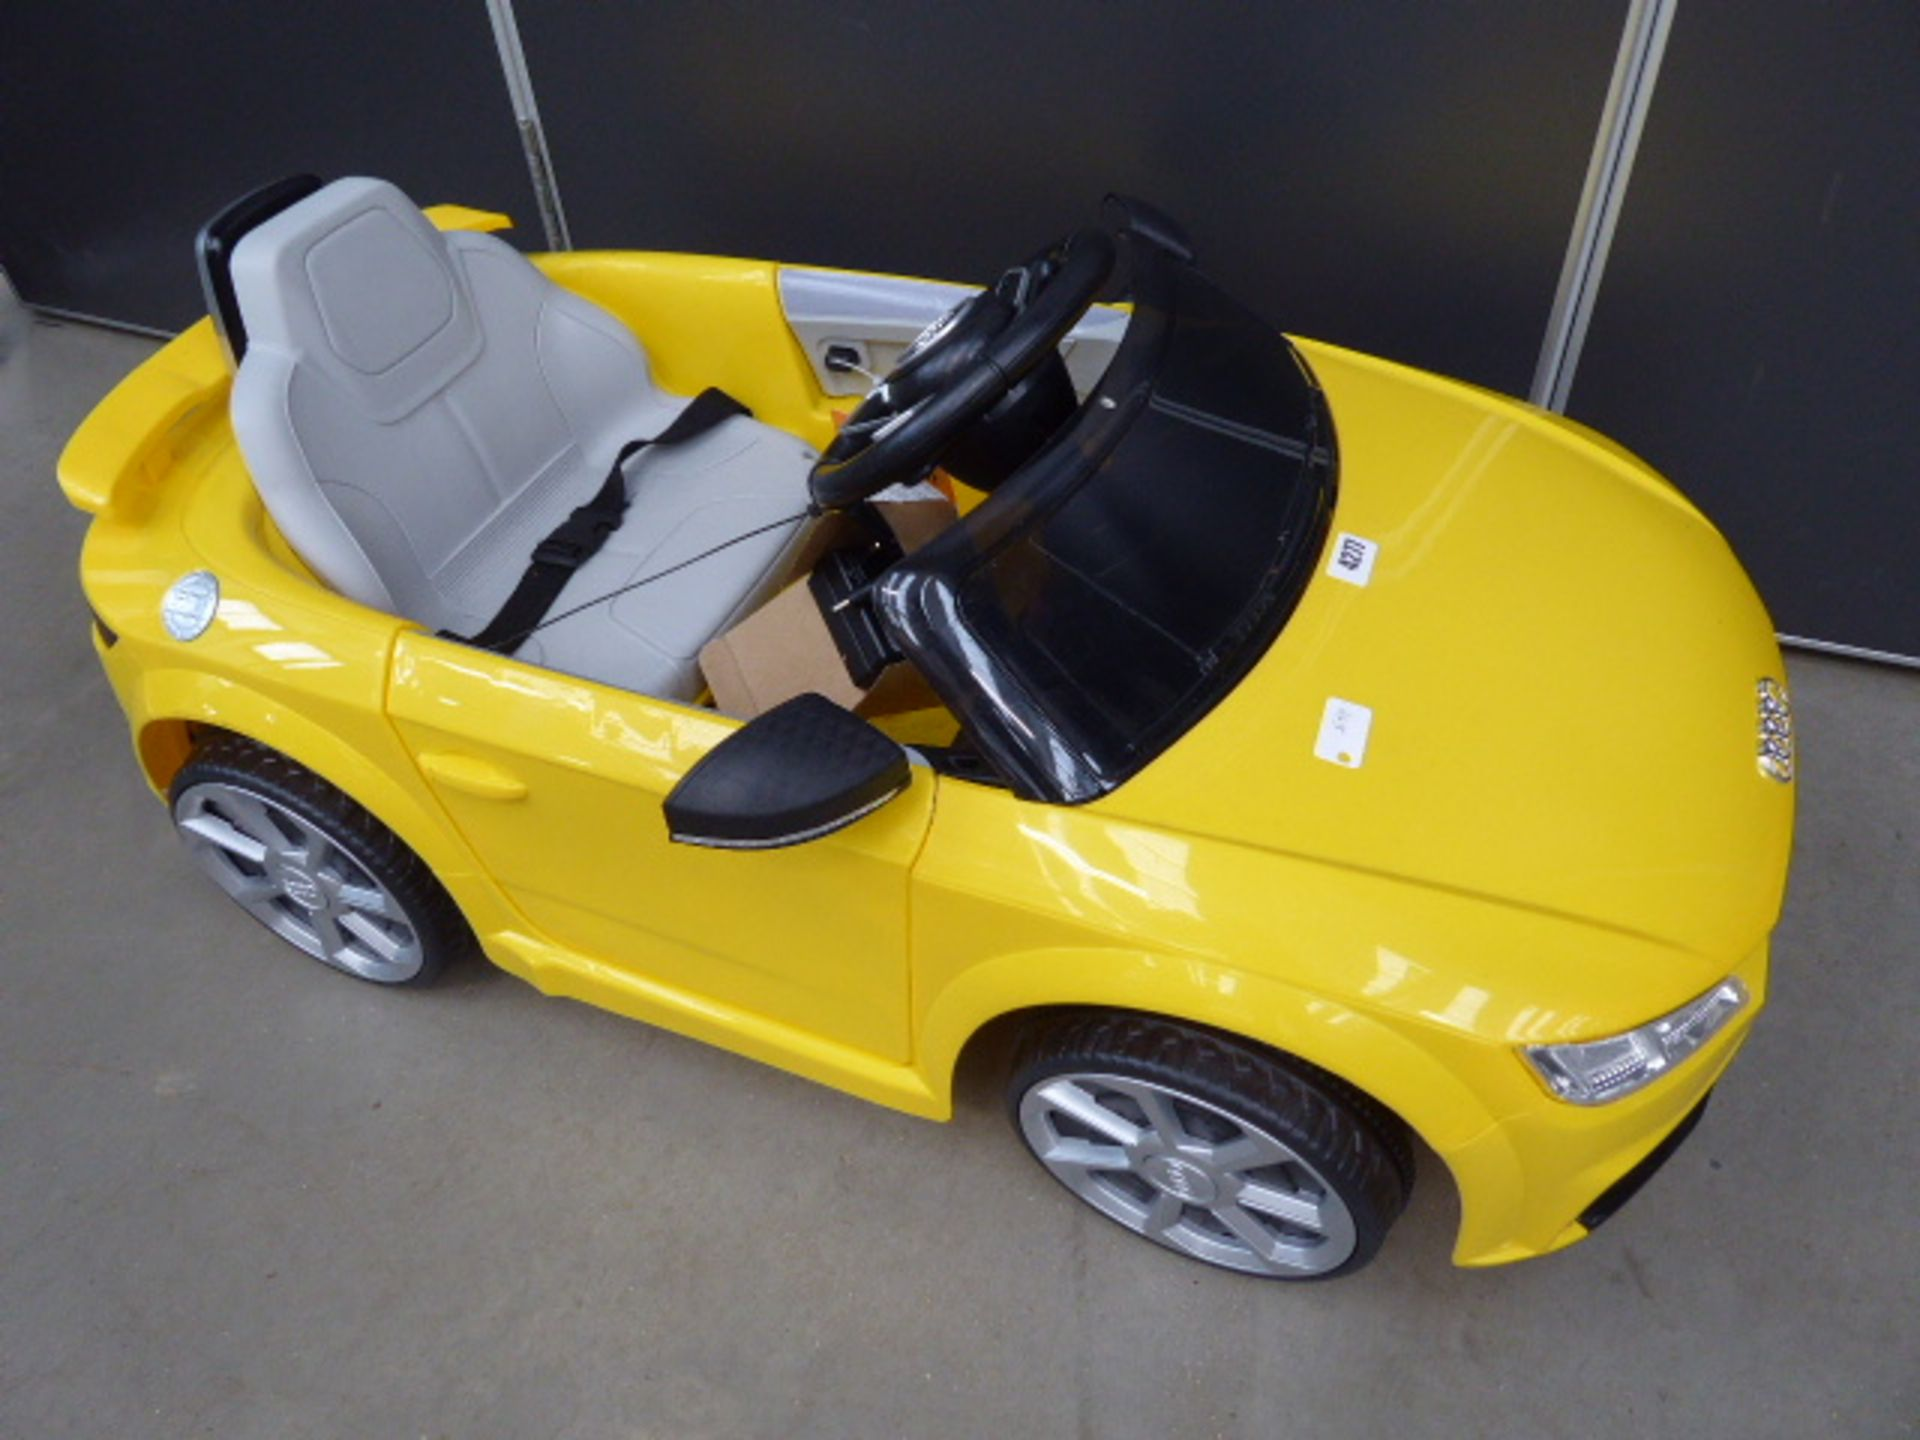 Lot 4277 - Yellow Audi TT childs electric car with charging lead